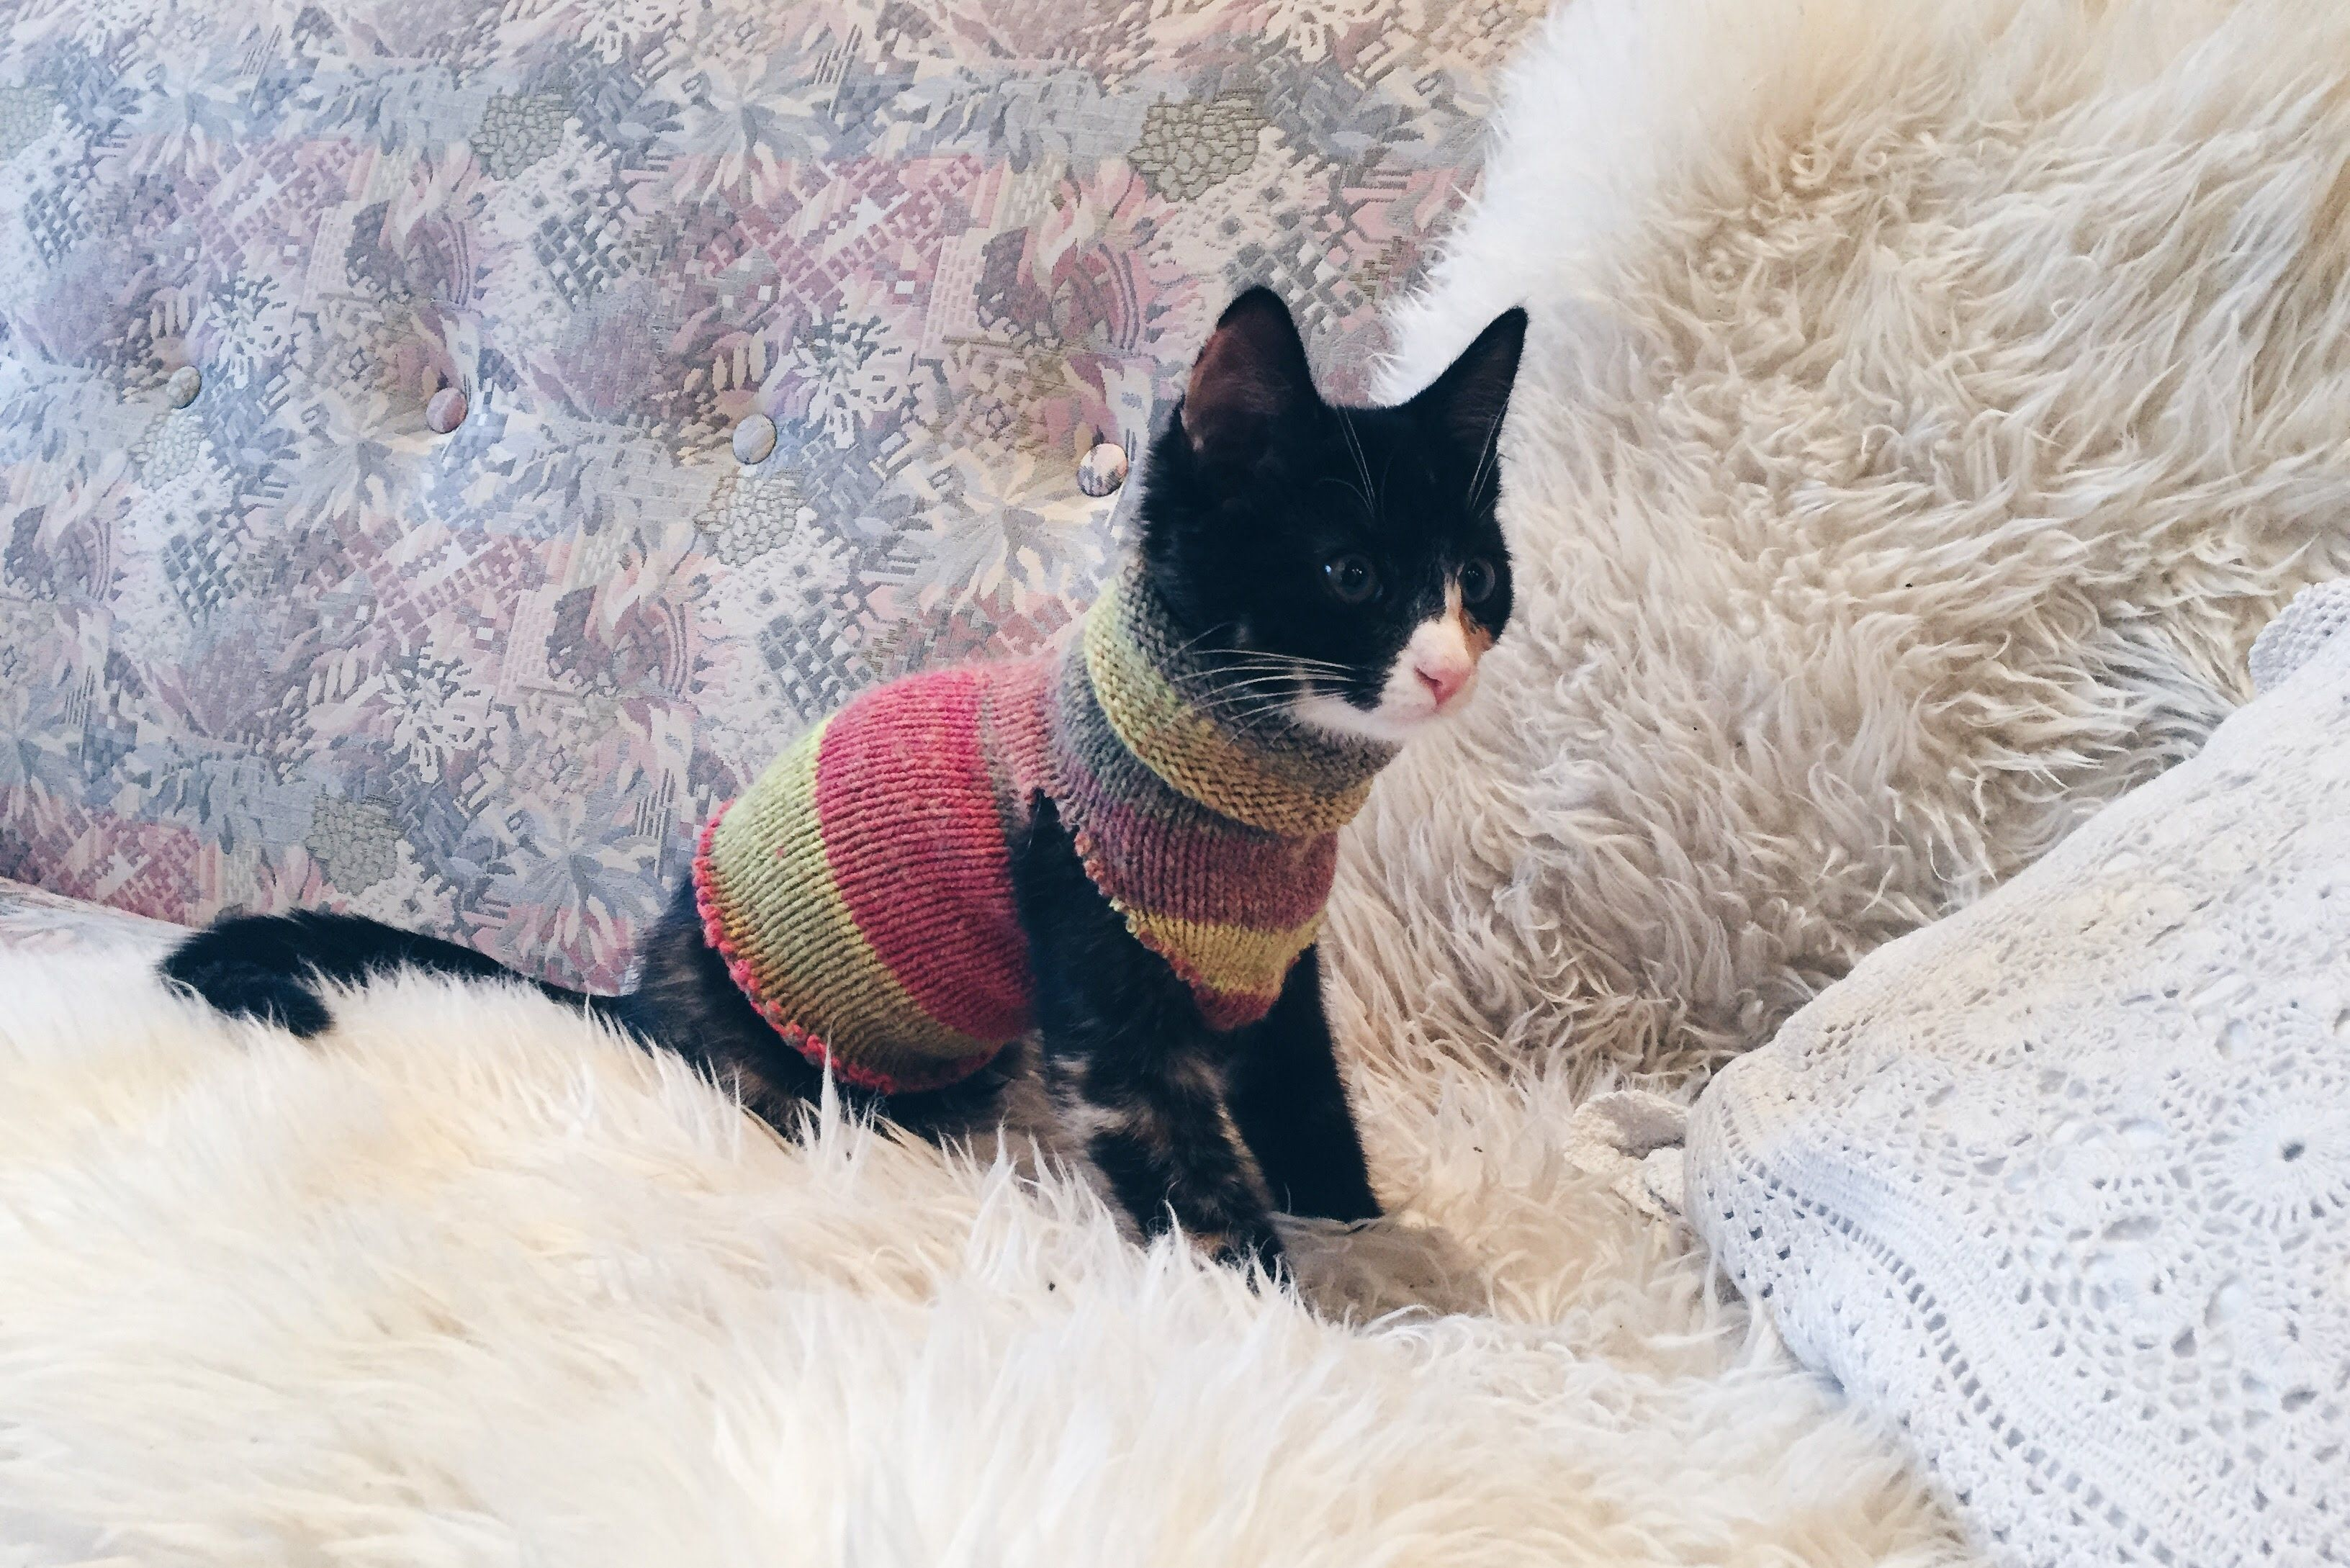 Diy How To Make A Kitten Sweater With Only A Sock After Being Outside For A Couple Of Days With Our Kitten Em Cat Sweater Pets Cat Clothes Kitten Clothes